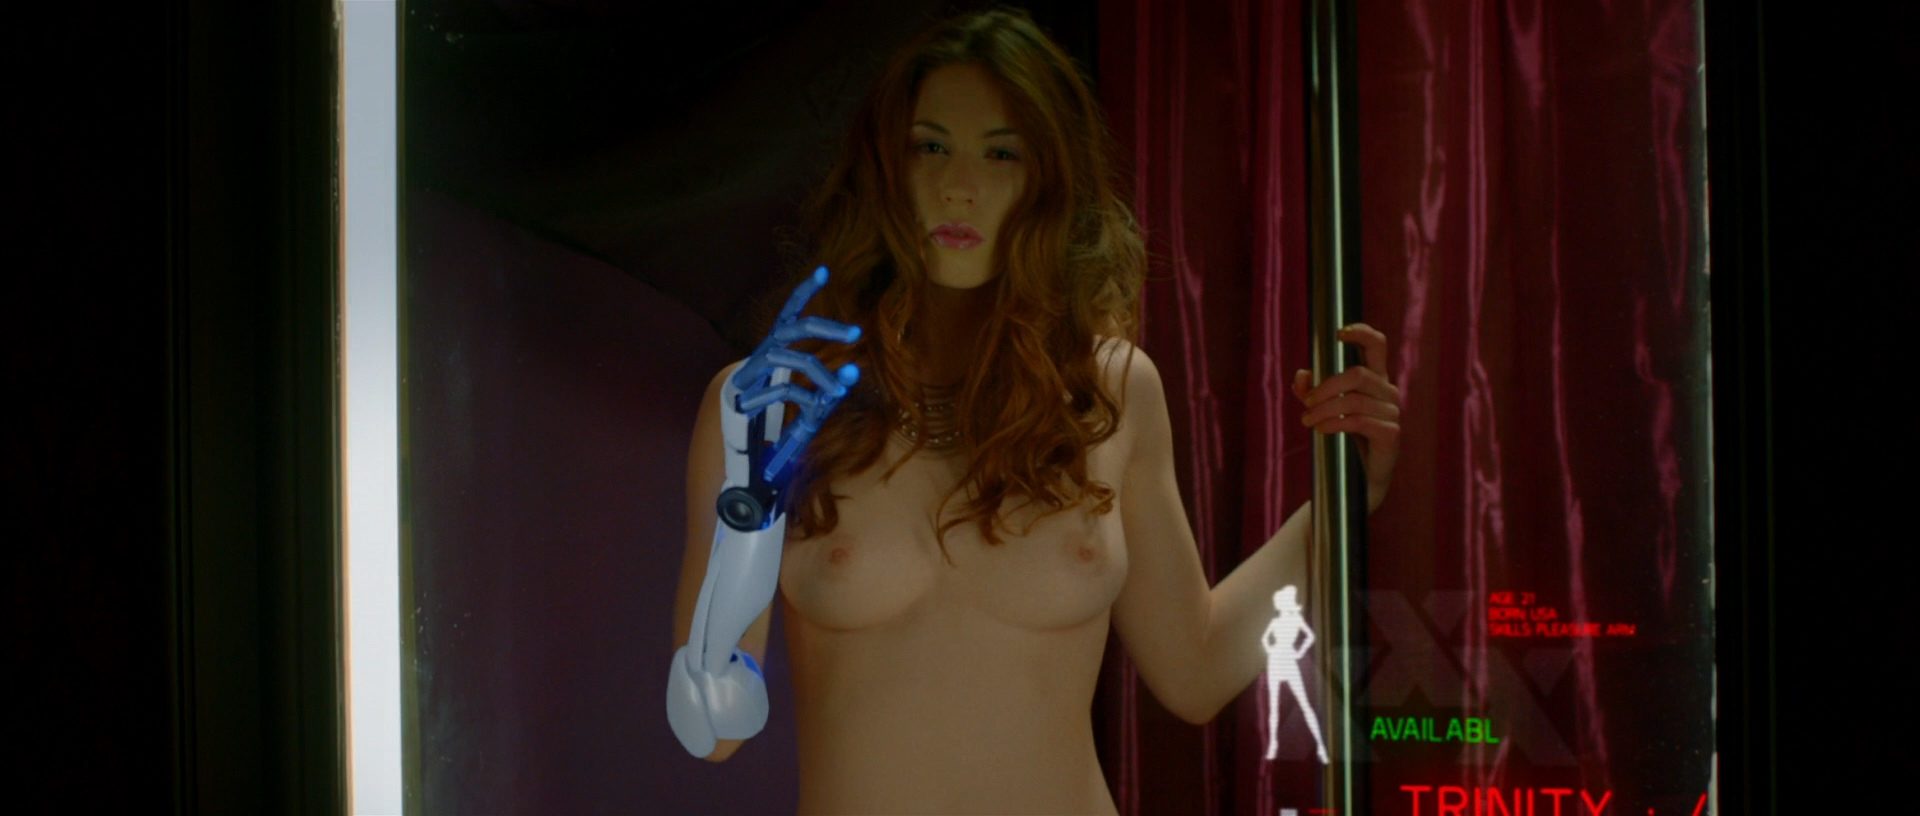 alexis knapp completed naked